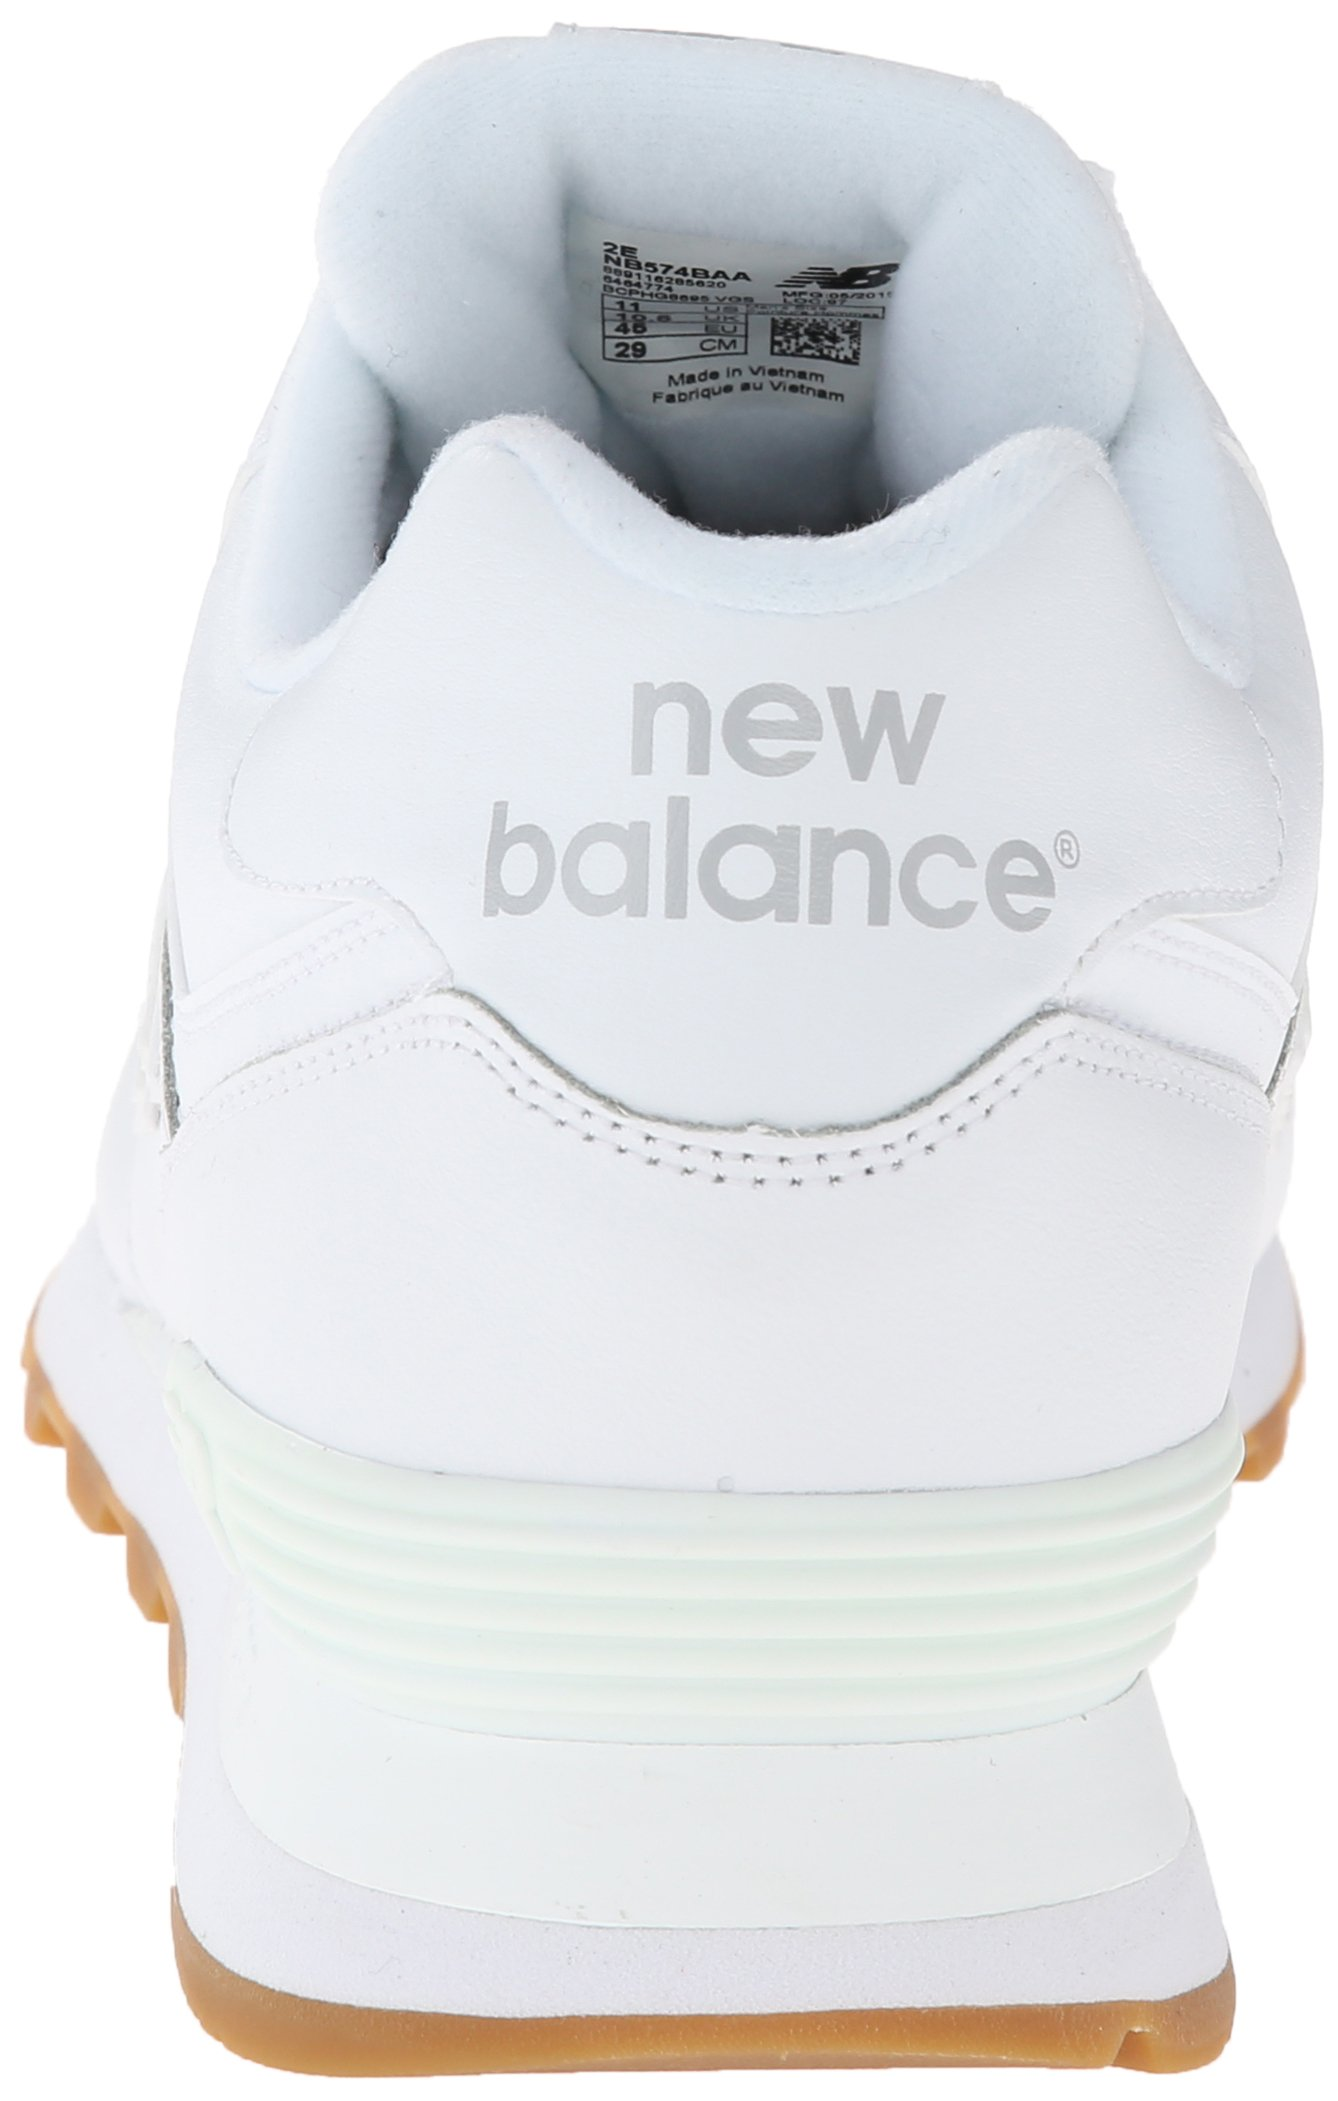 New Balance Men's NB574 Leather Pack Running Shoe